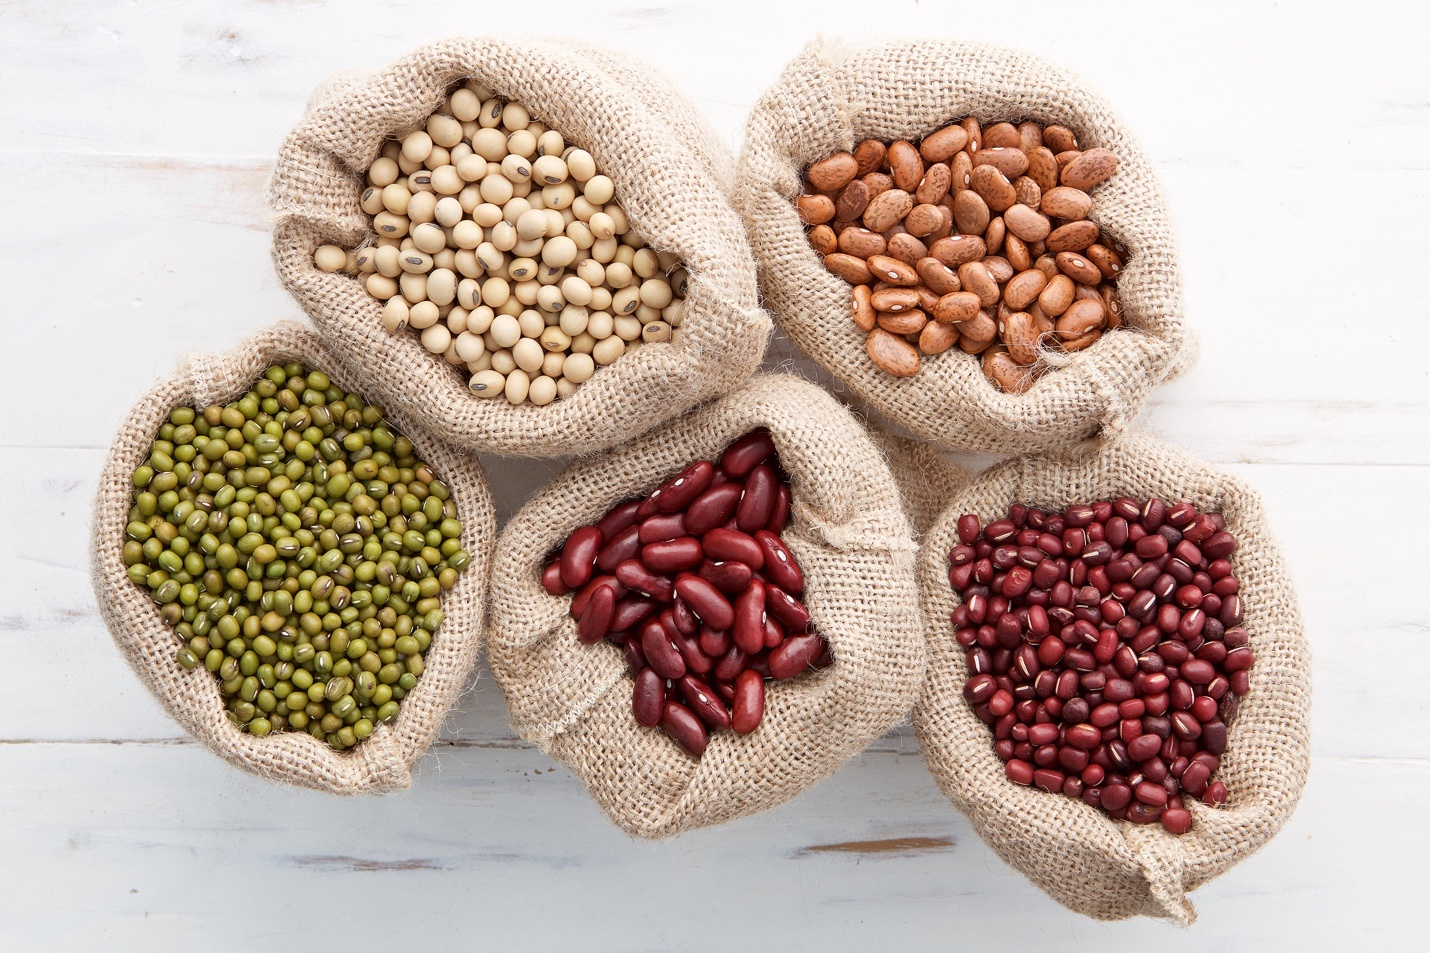 beans - Top 20 Natural Foods To Help You Manage Your Diabetes Effectively